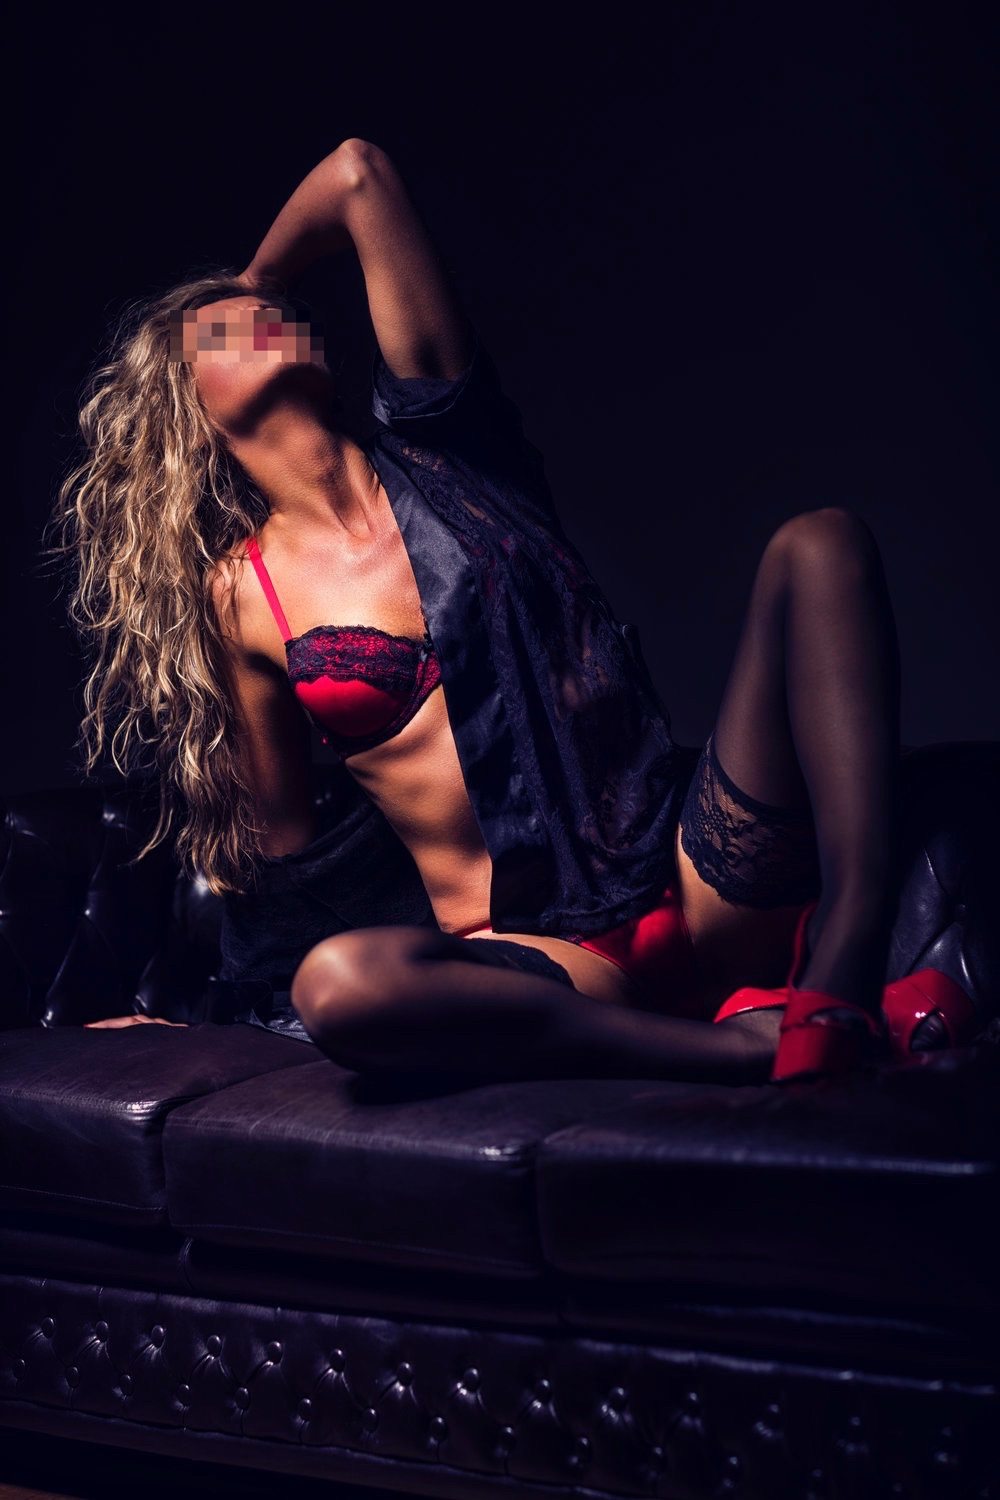 escort-flensburg-lady-madeleine-perfect-date-escort-007-2.jpg